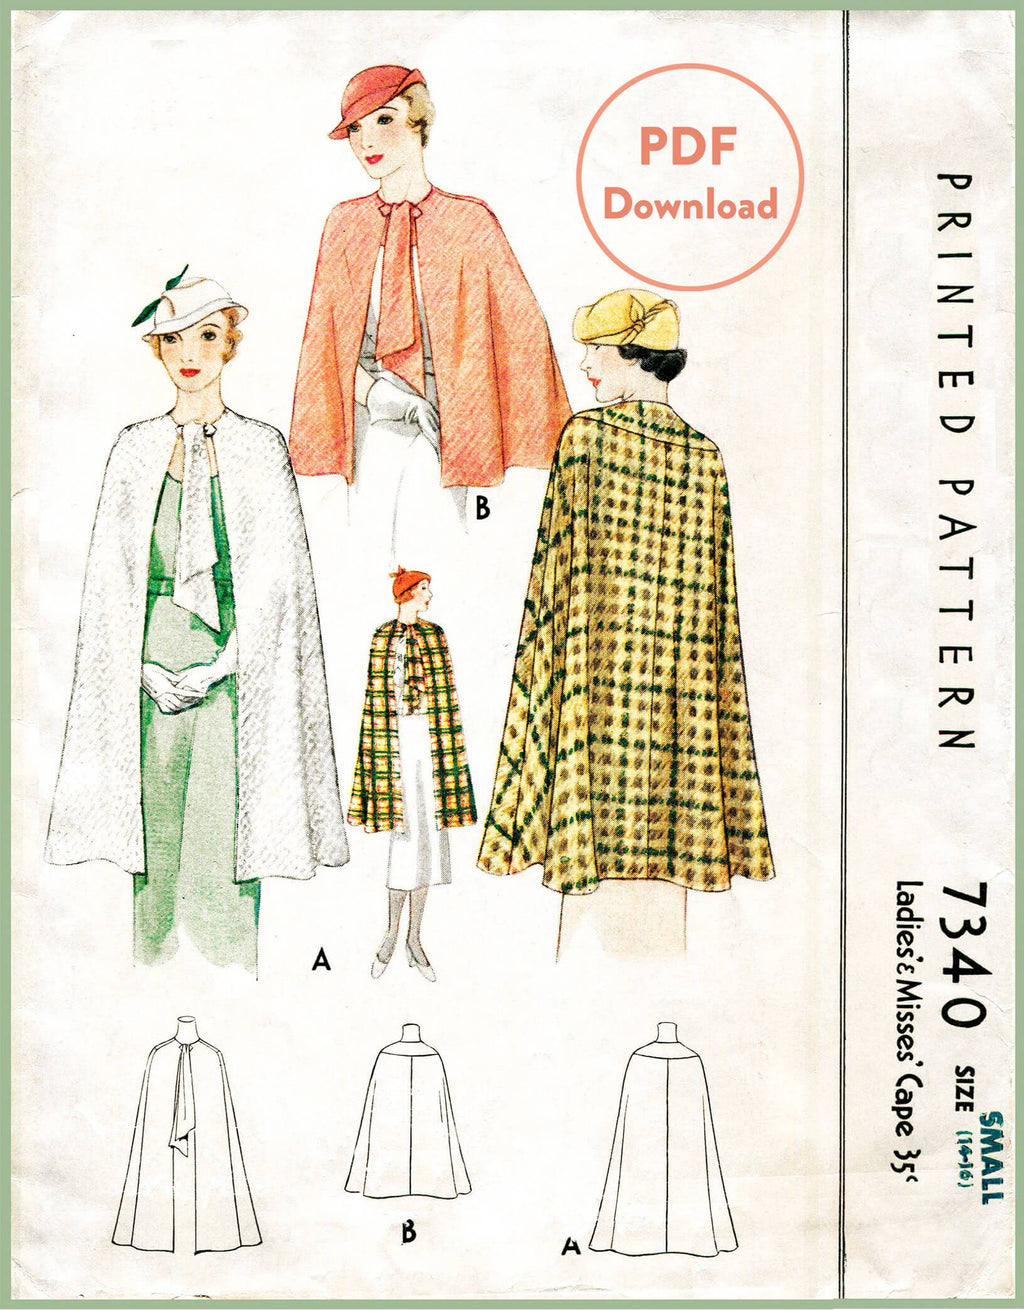 McCall 7340 1930s cape vintage sewing pattern 1930 outerwear PDF download